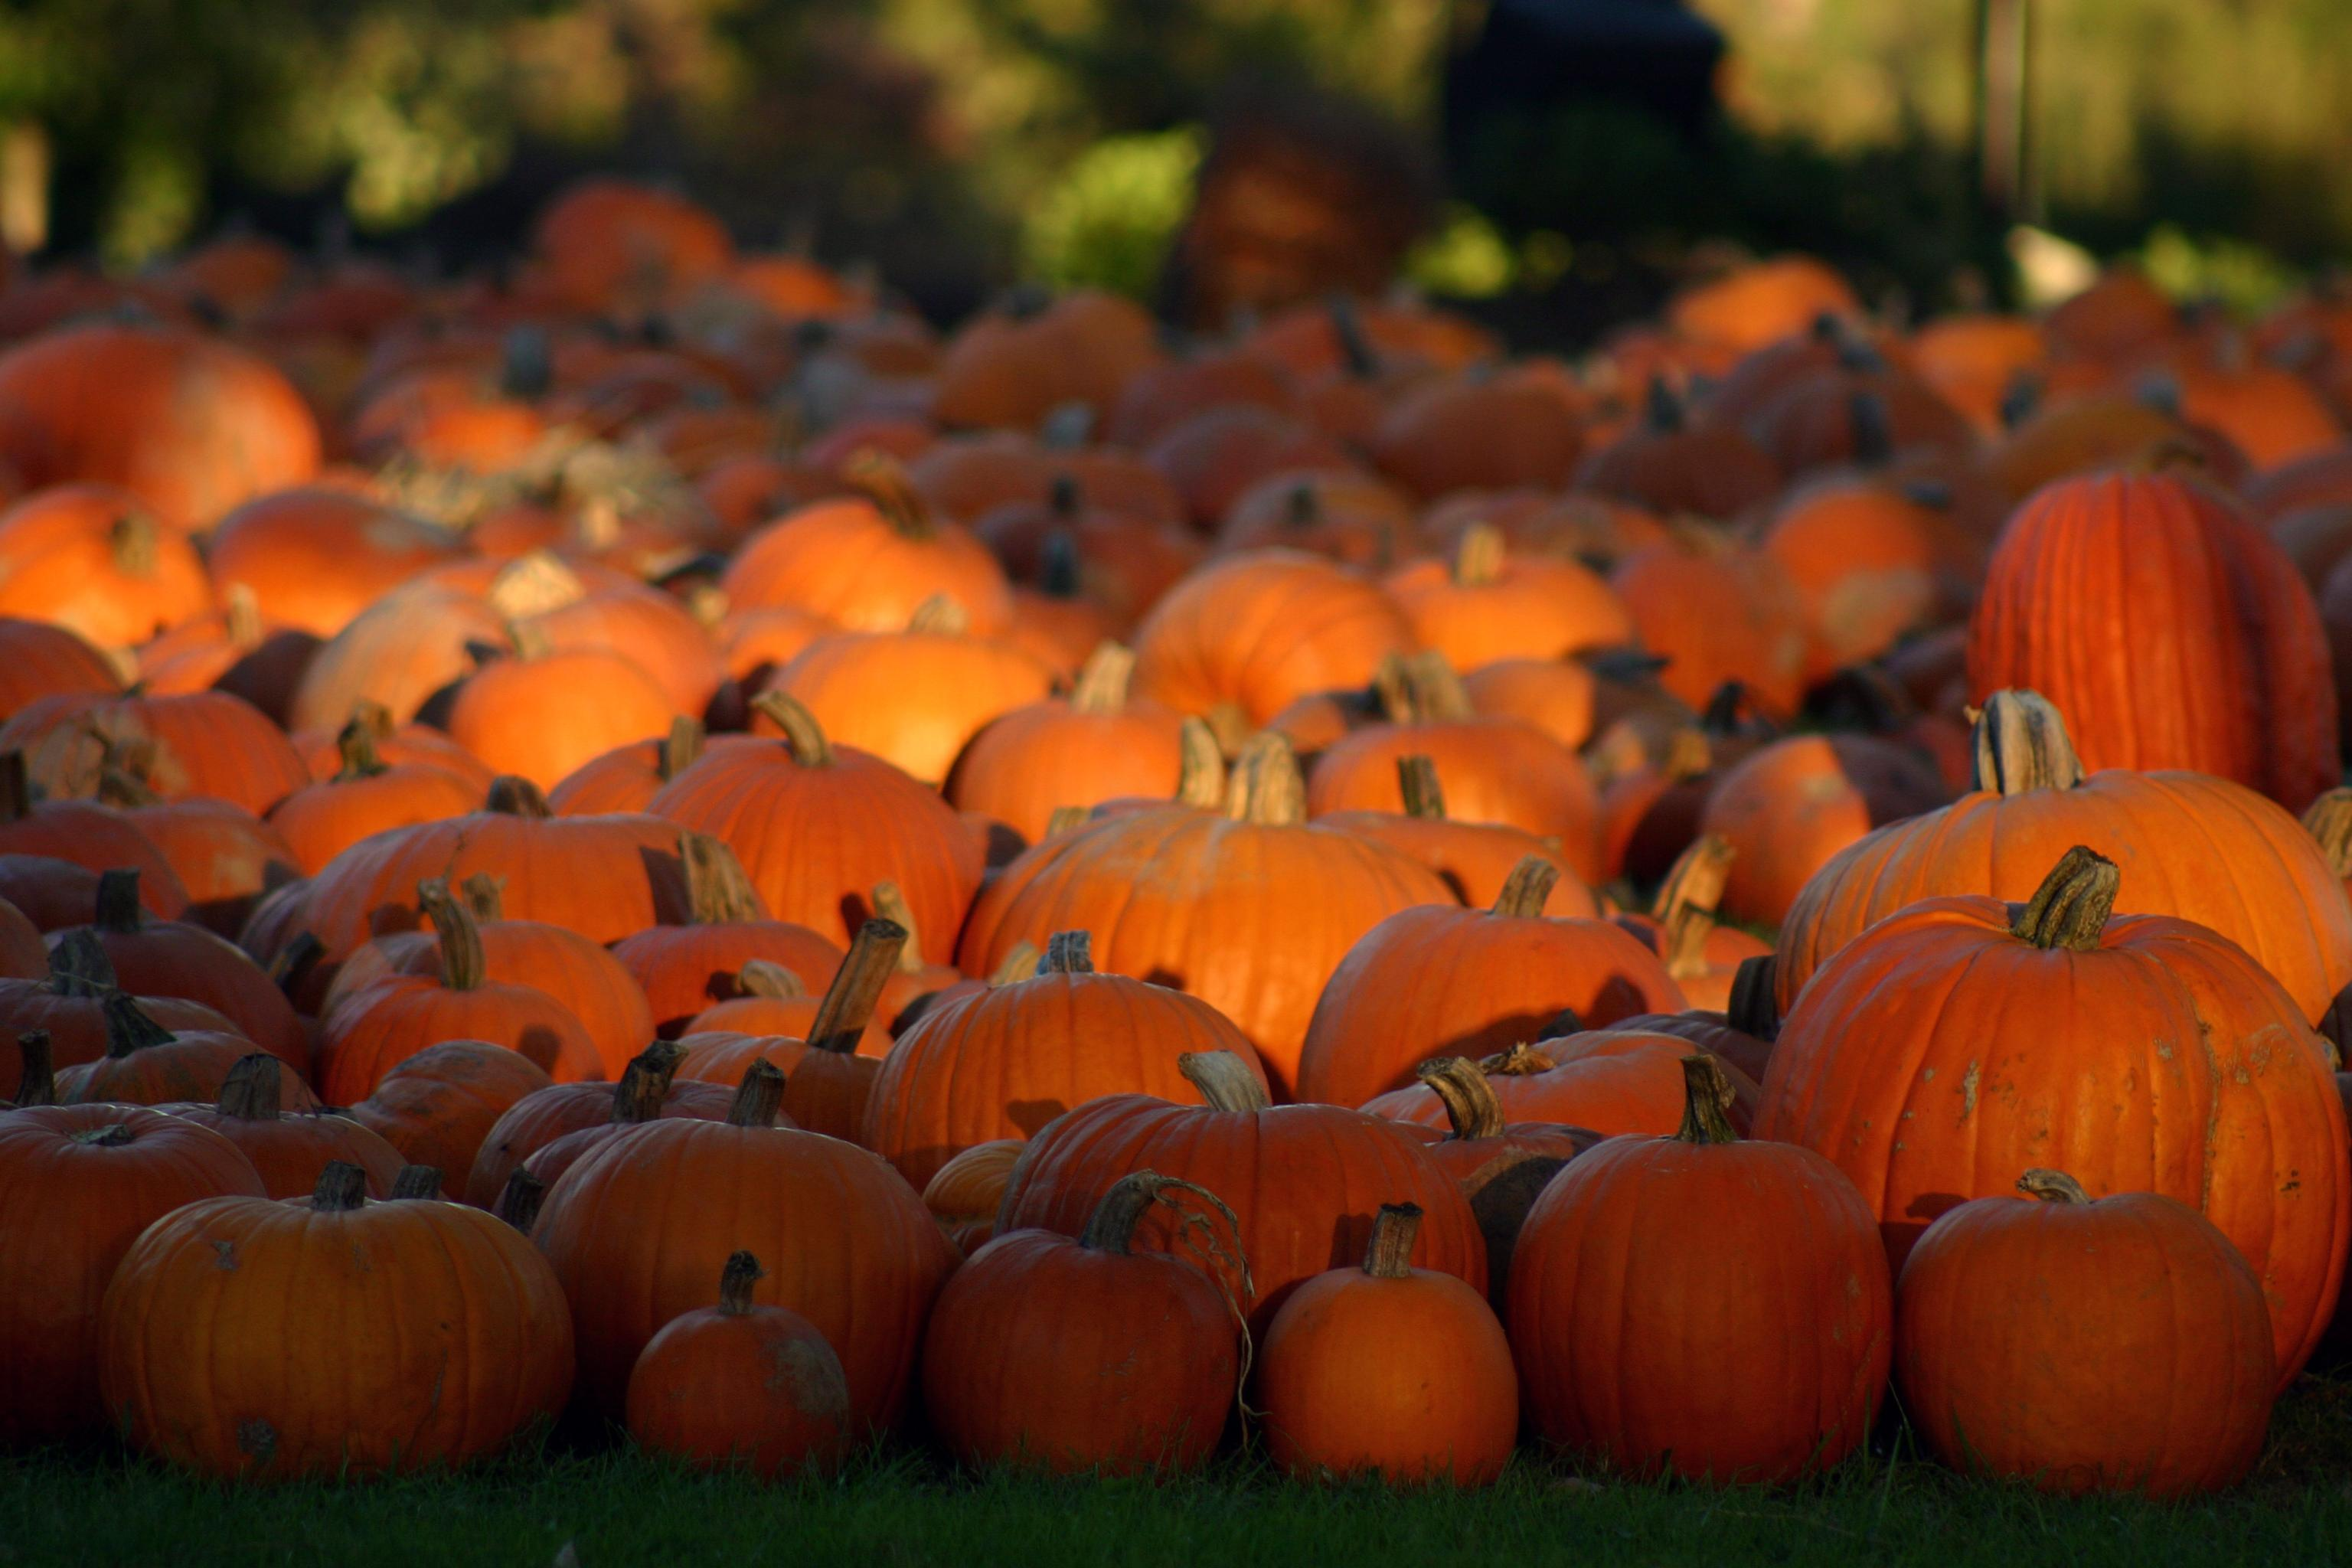 download Halloween Pumpkin Patch Wallpaper MAROONBEARDCOM 3072x2048